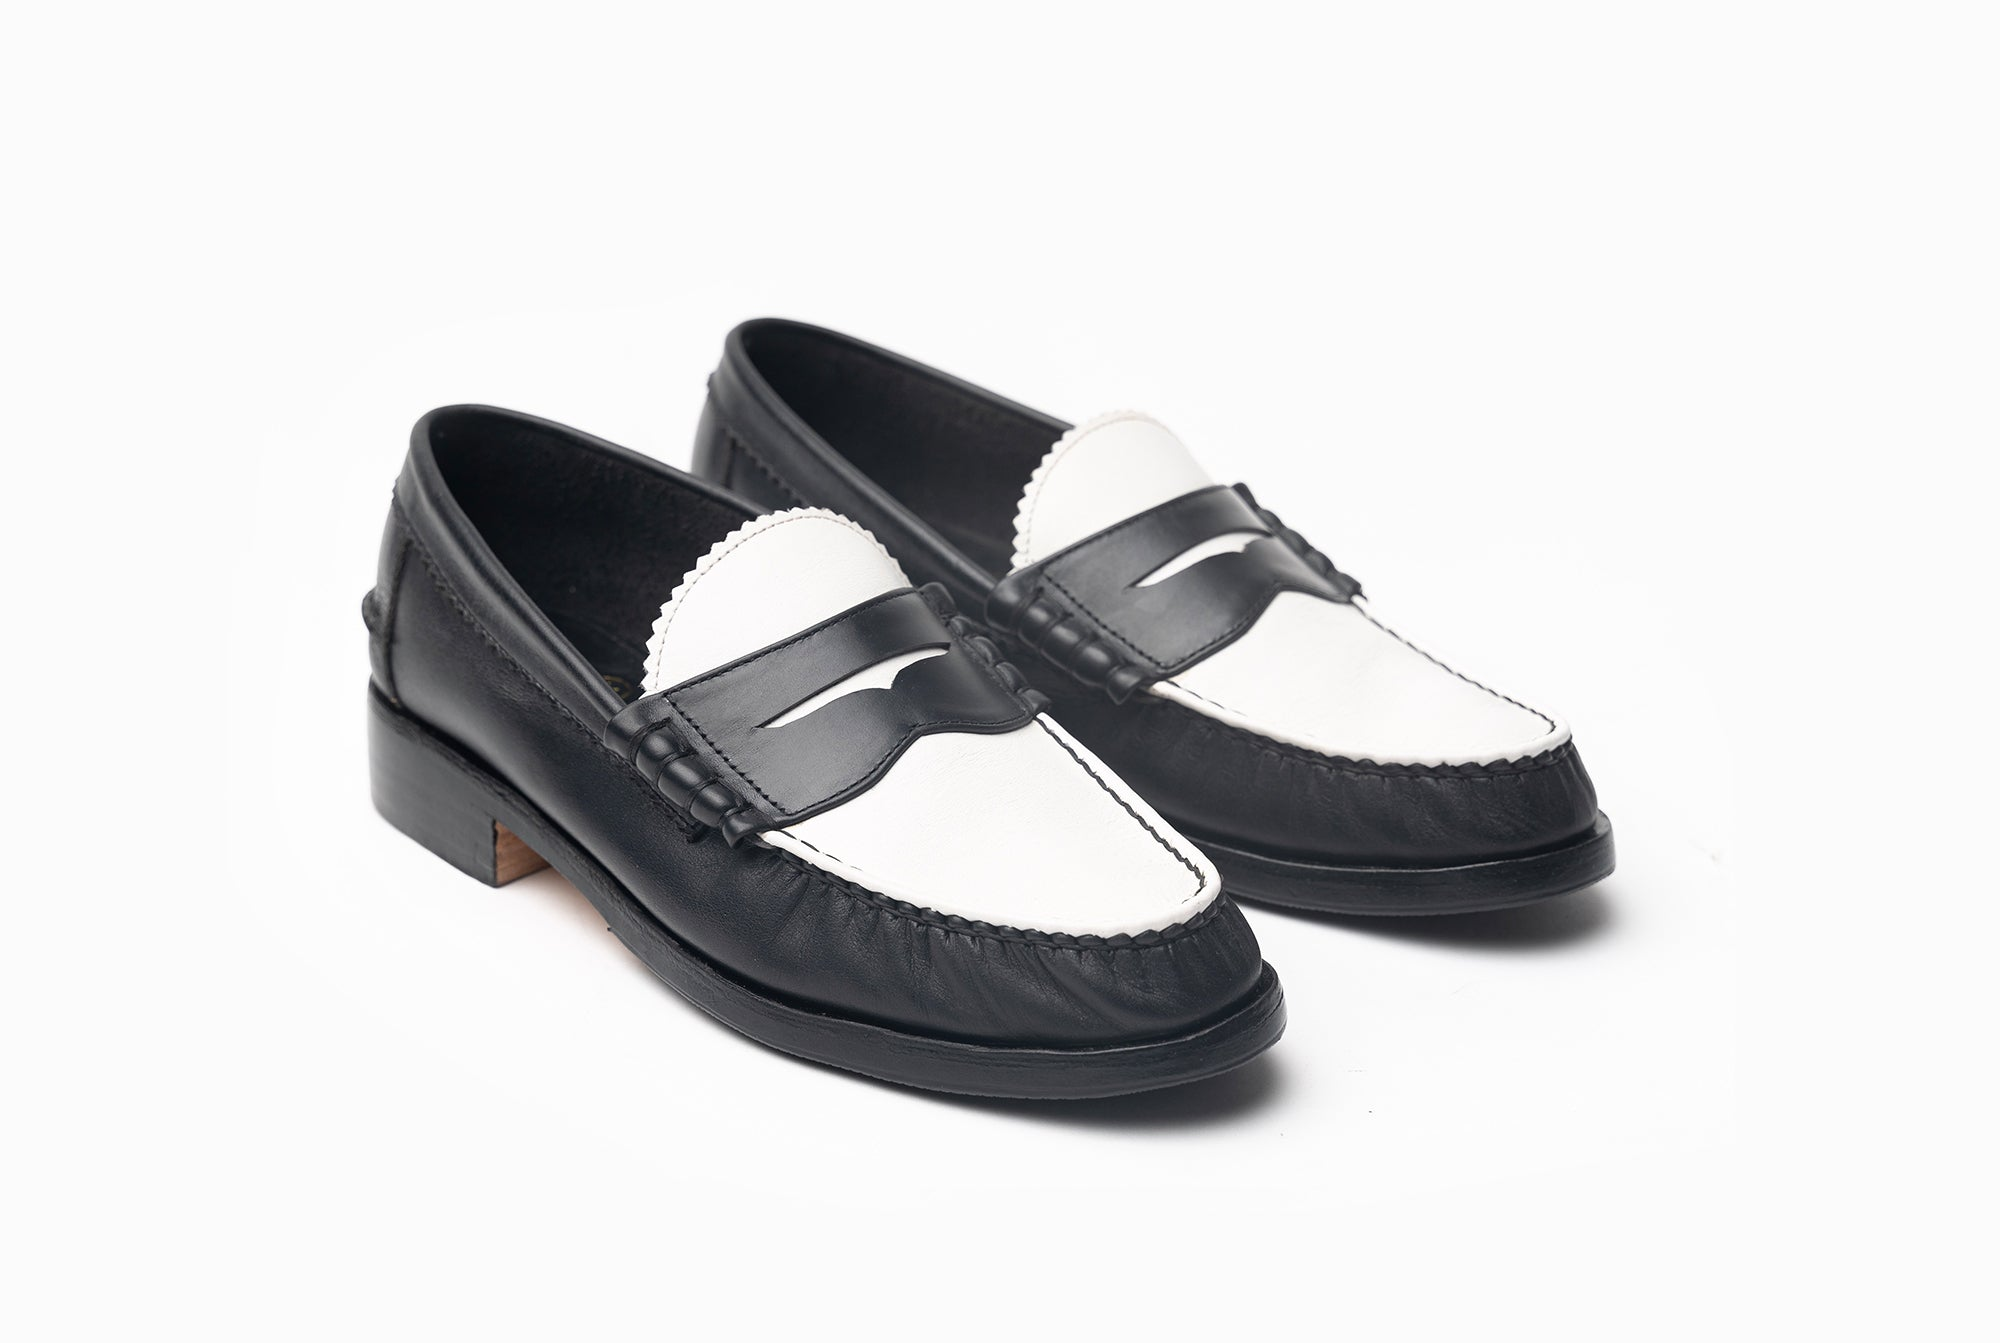 The Grand Spectator Loafers - Black